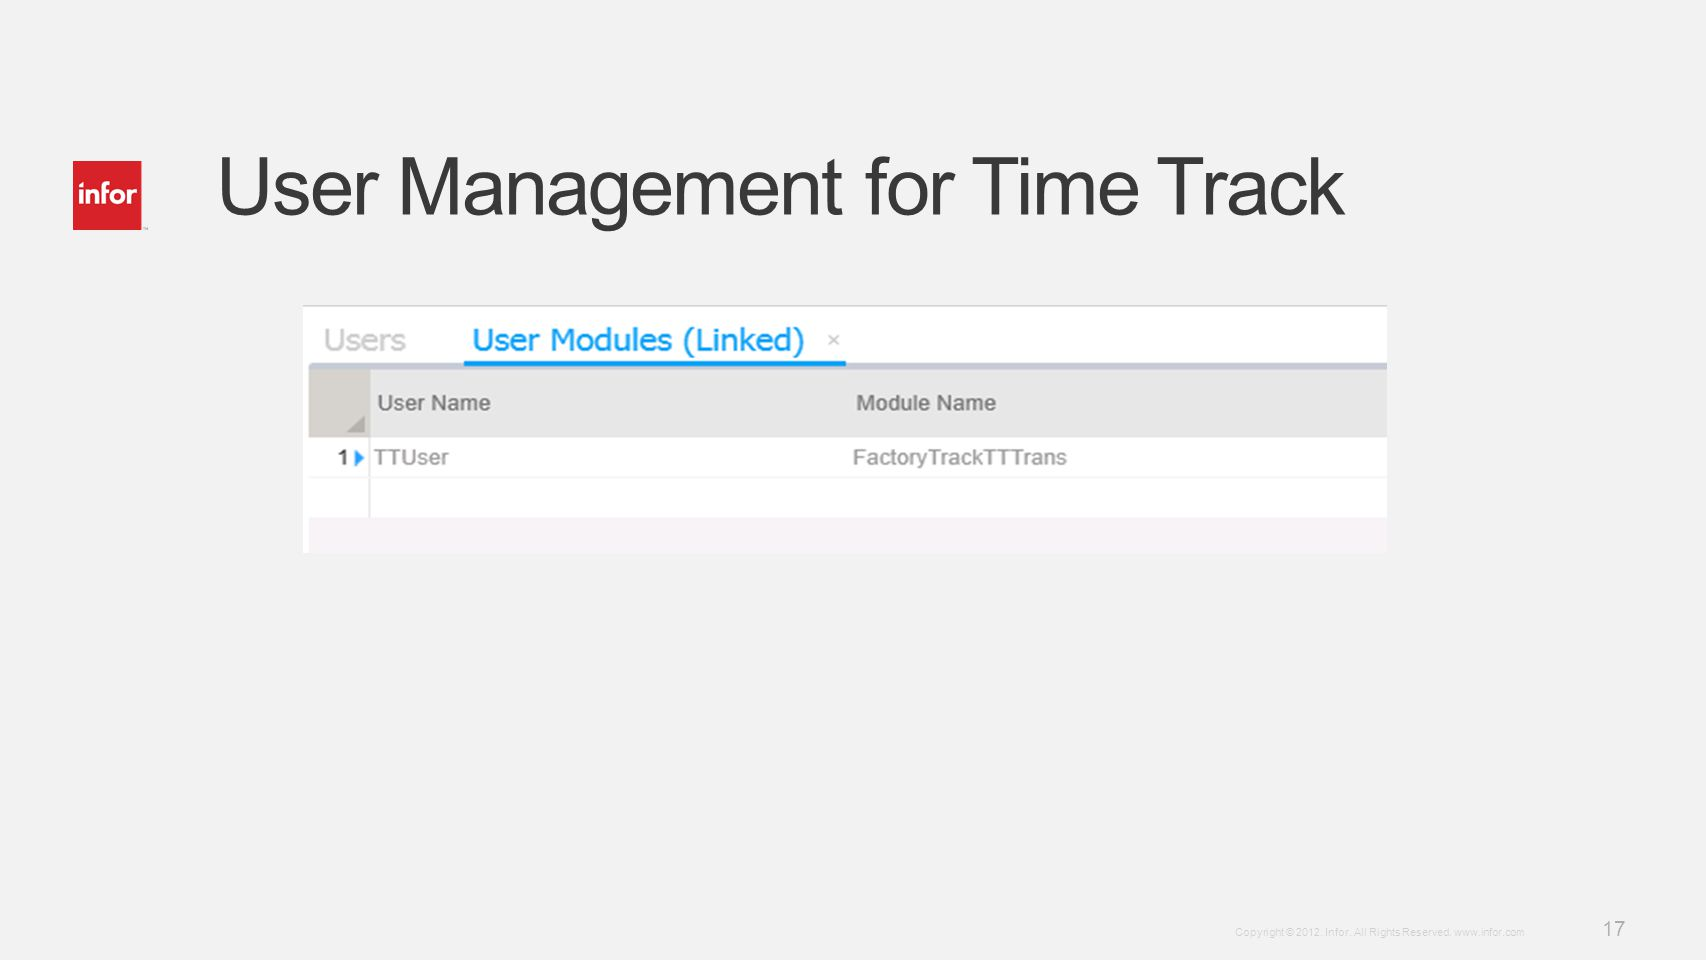 User Management for Time Track